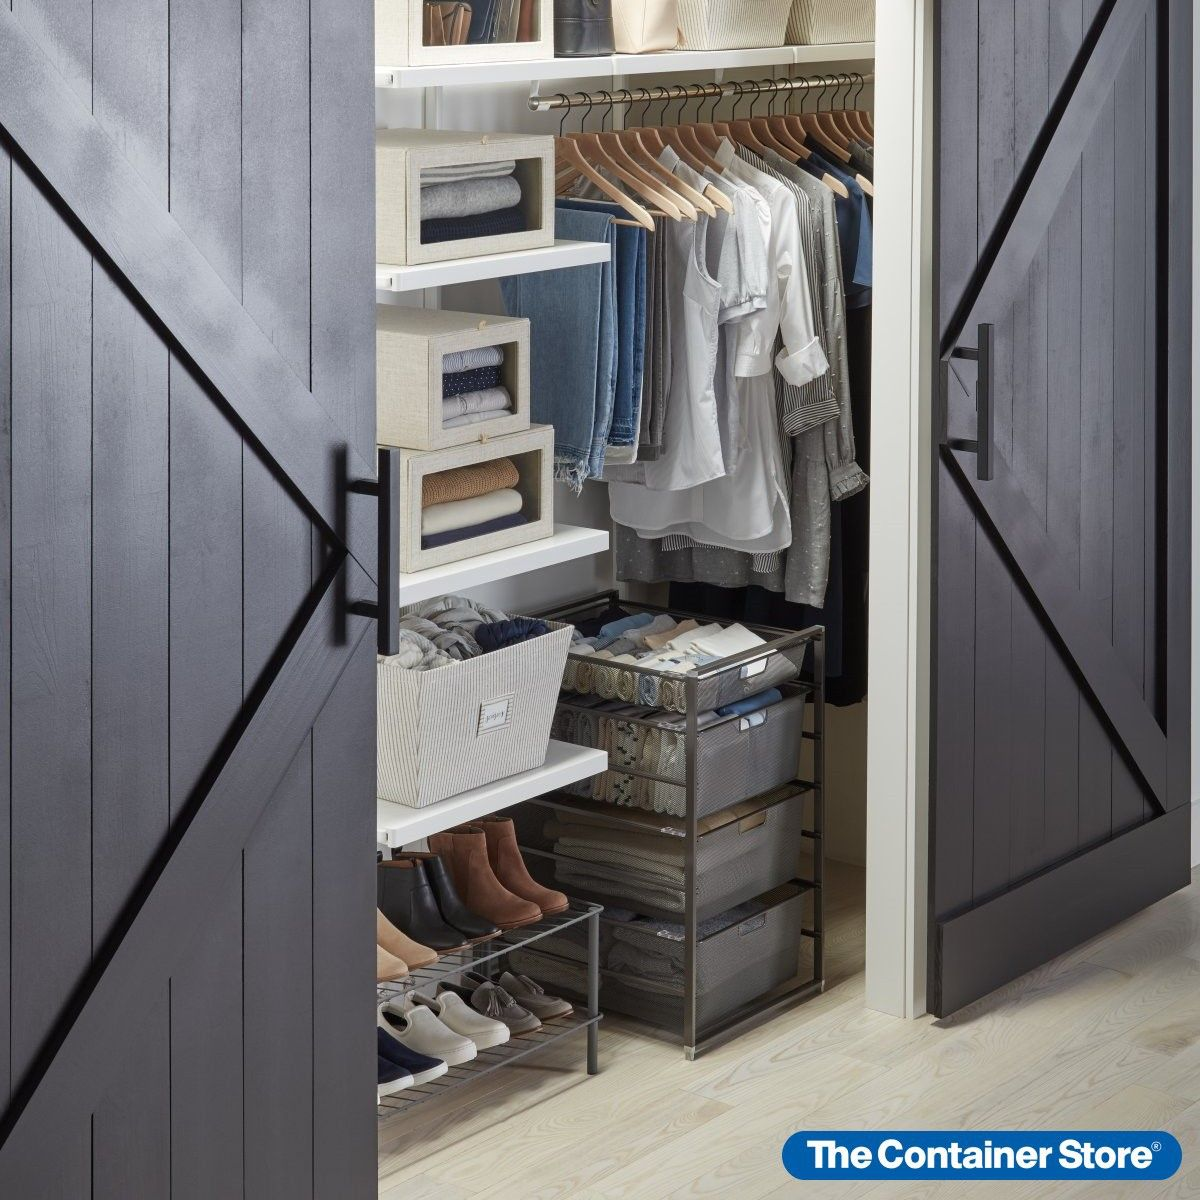 Our Buyers Have Put Together An Amazing Selection Of Closet Storage Ideas Closet Organizers And A In 2020 Closet Storage Storage Closet Organization Closet Organizers